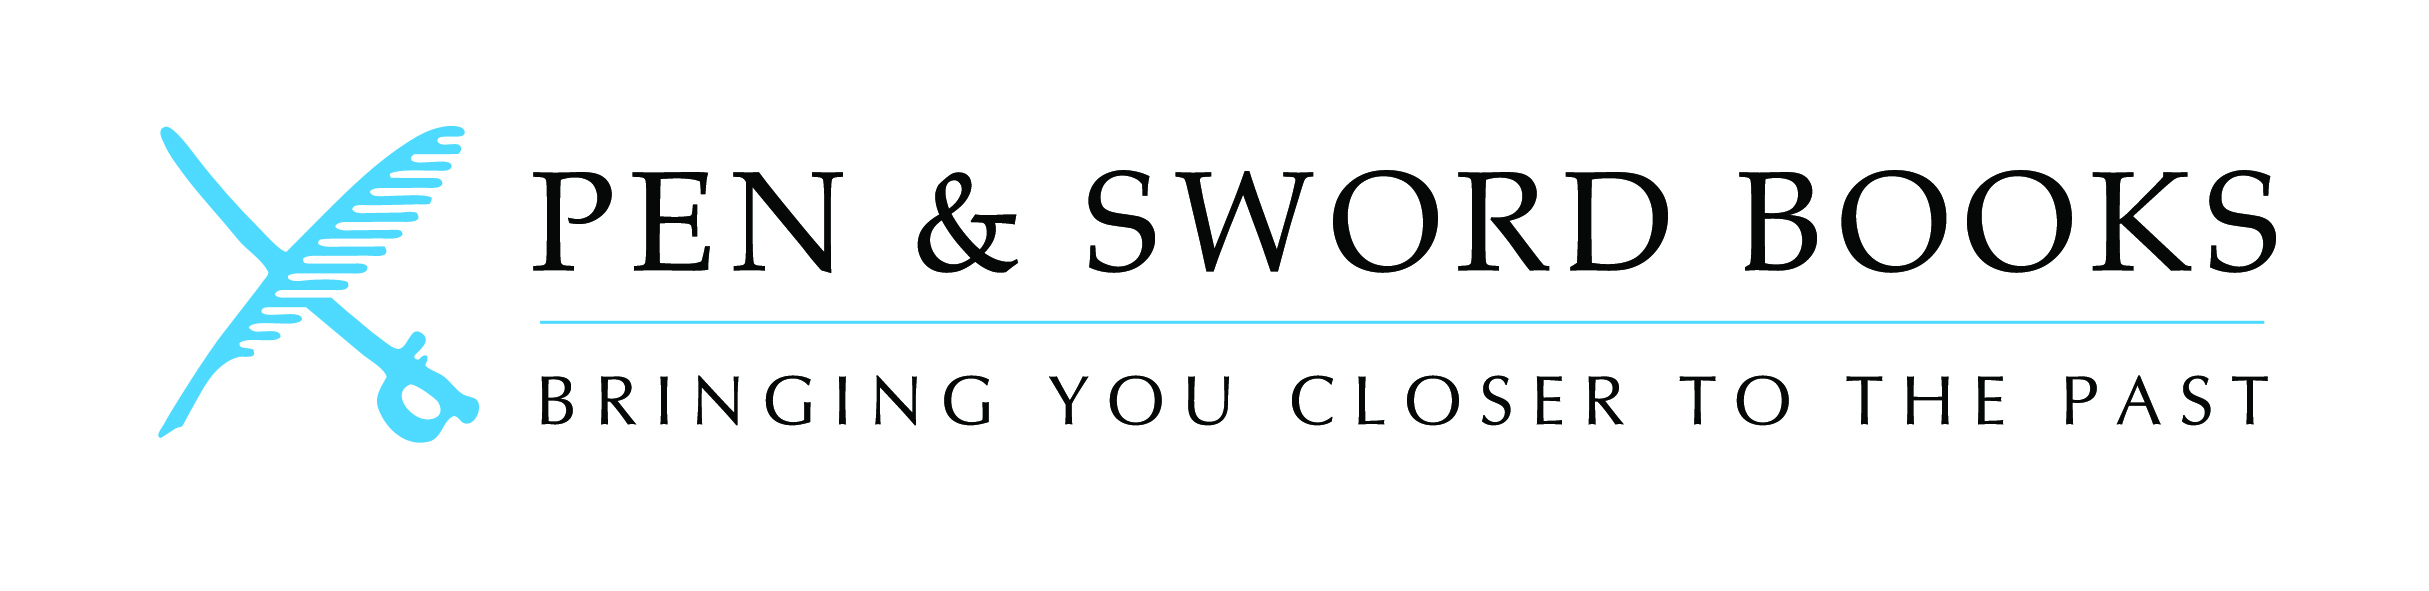 Pen and Sword Books - Bringing you closer to the past.